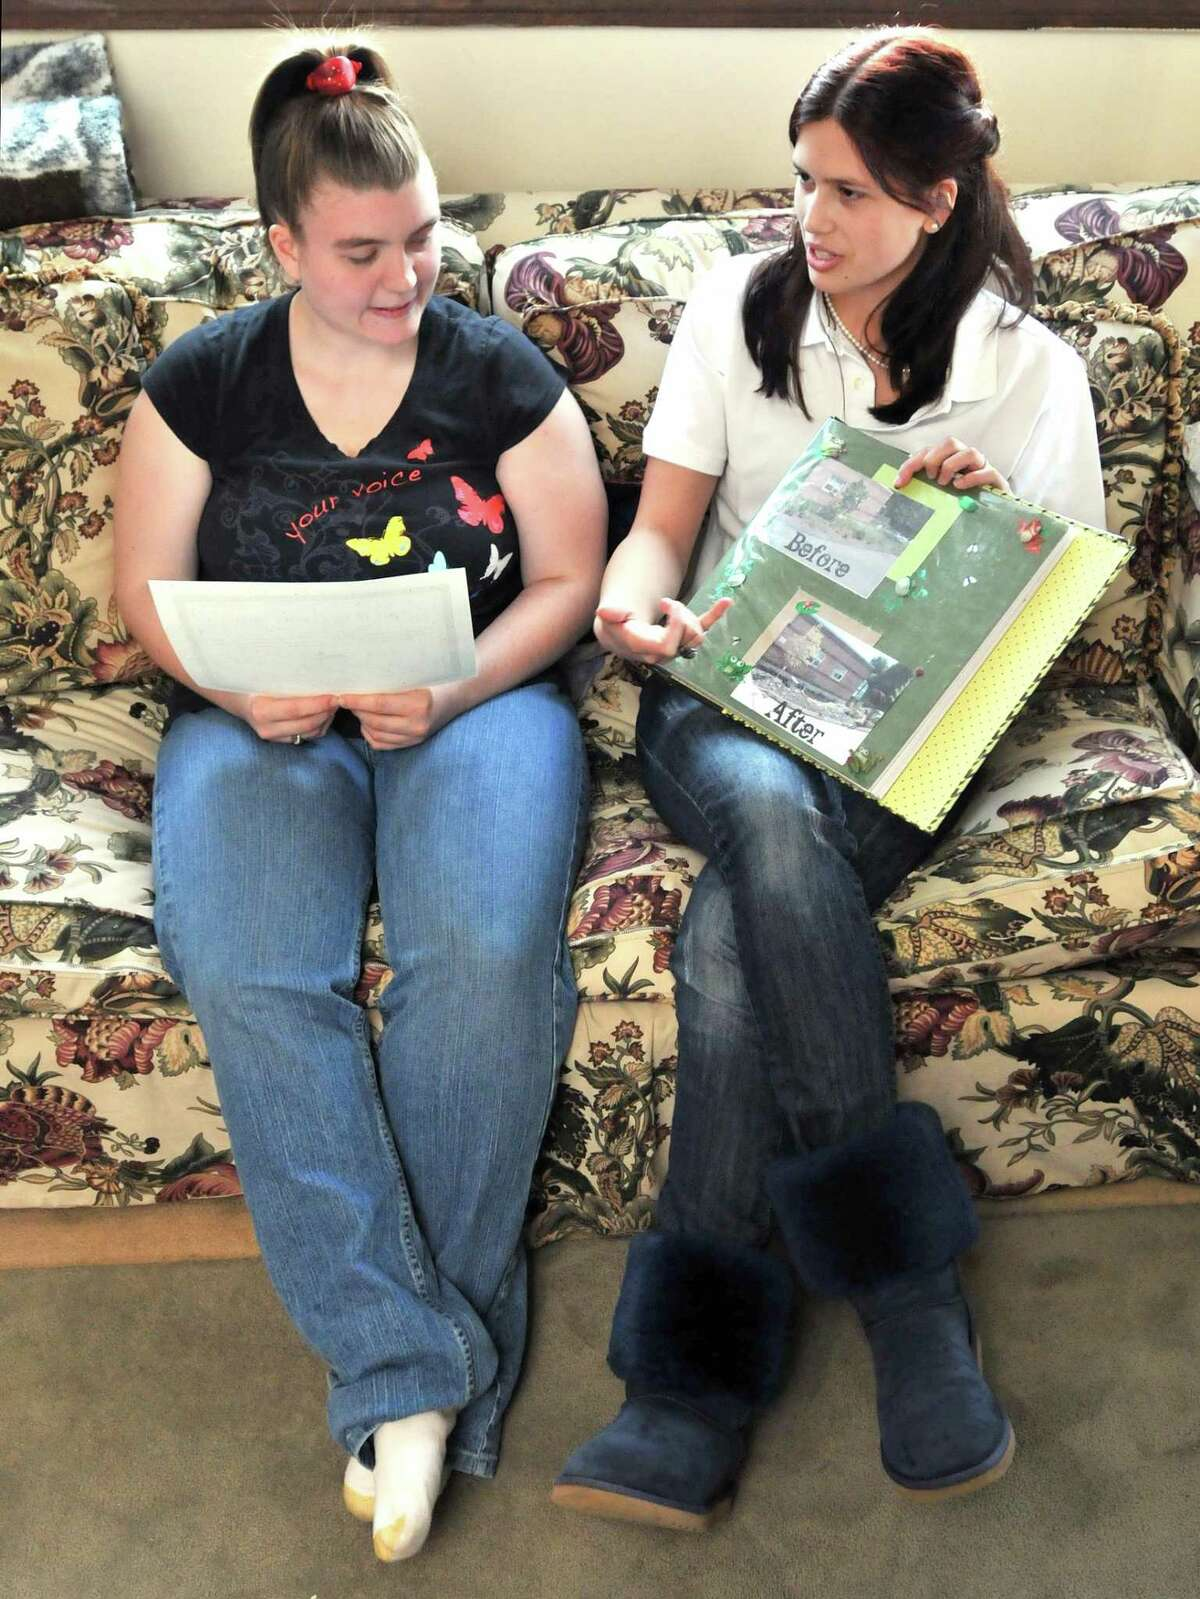 West Haven--Jennifer Bourque and Lauren Fernandez collaborated on the project for their Gold Awards, the Girl Scouts' highest honor. Photo by Brad Horrigan/New Haven Register